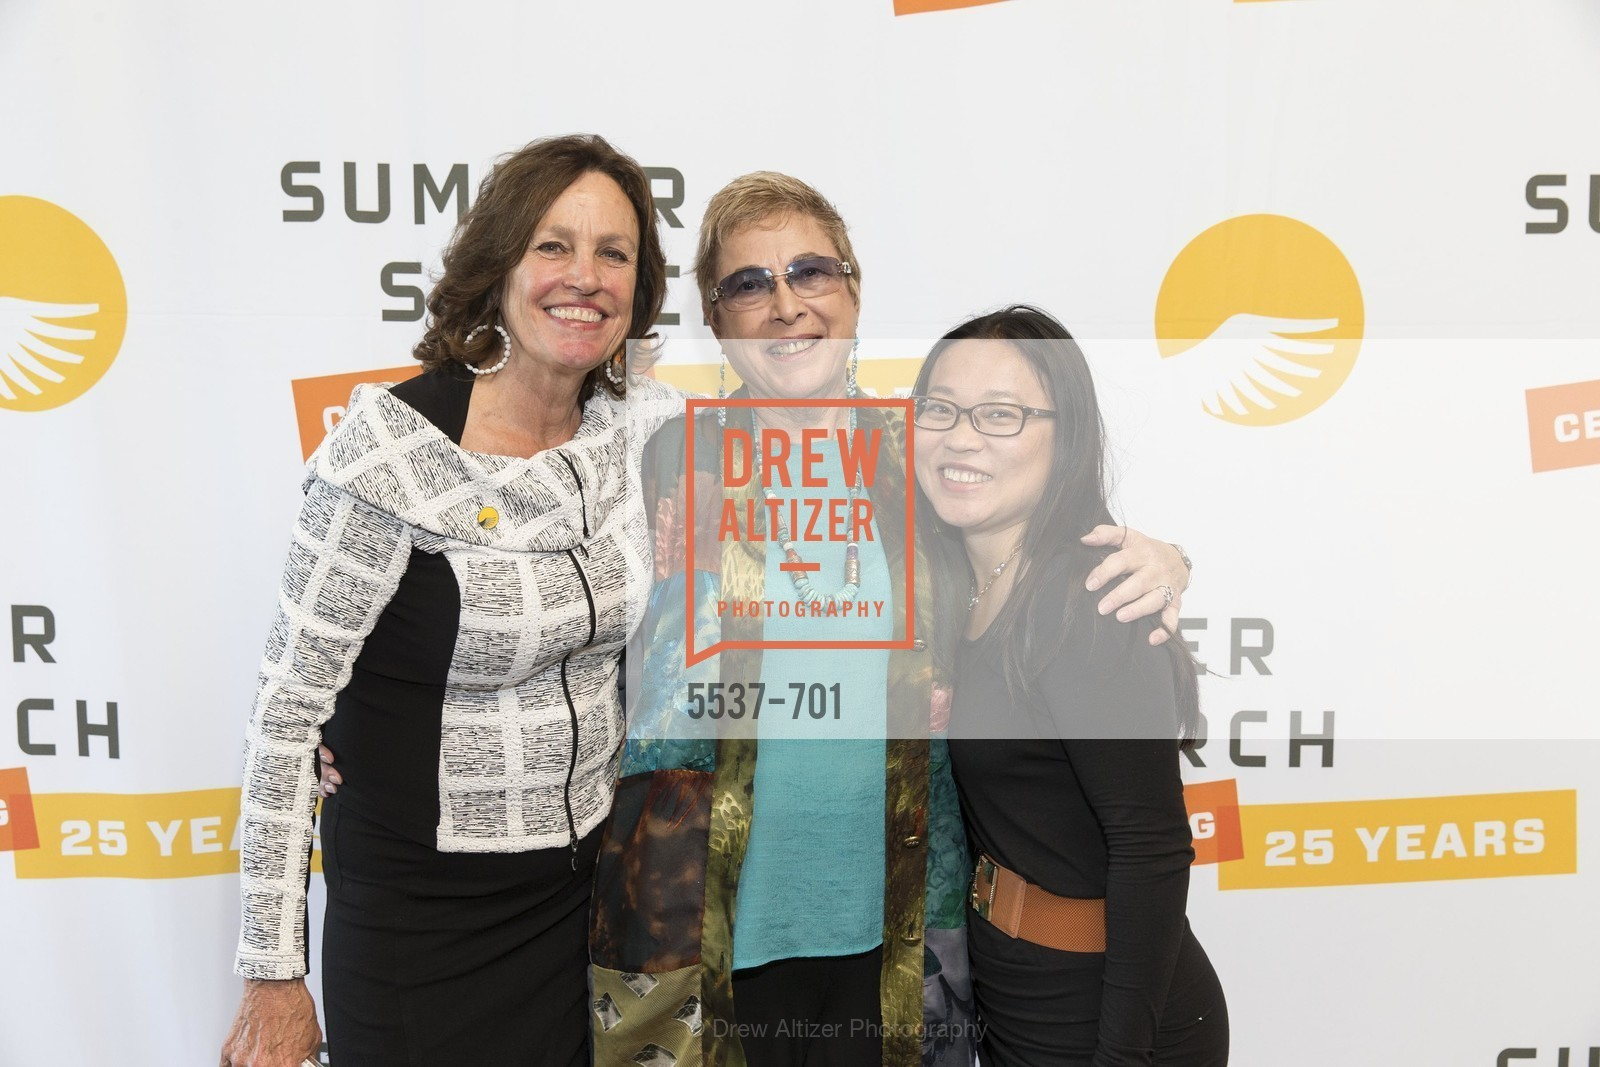 Linda Mornell, Lettie Lupis, Janice Lee, SUMMER SEARCH San Francisco 25th Anniversary, US, May 7th, 2015,Drew Altizer, Drew Altizer Photography, full-service agency, private events, San Francisco photographer, photographer california